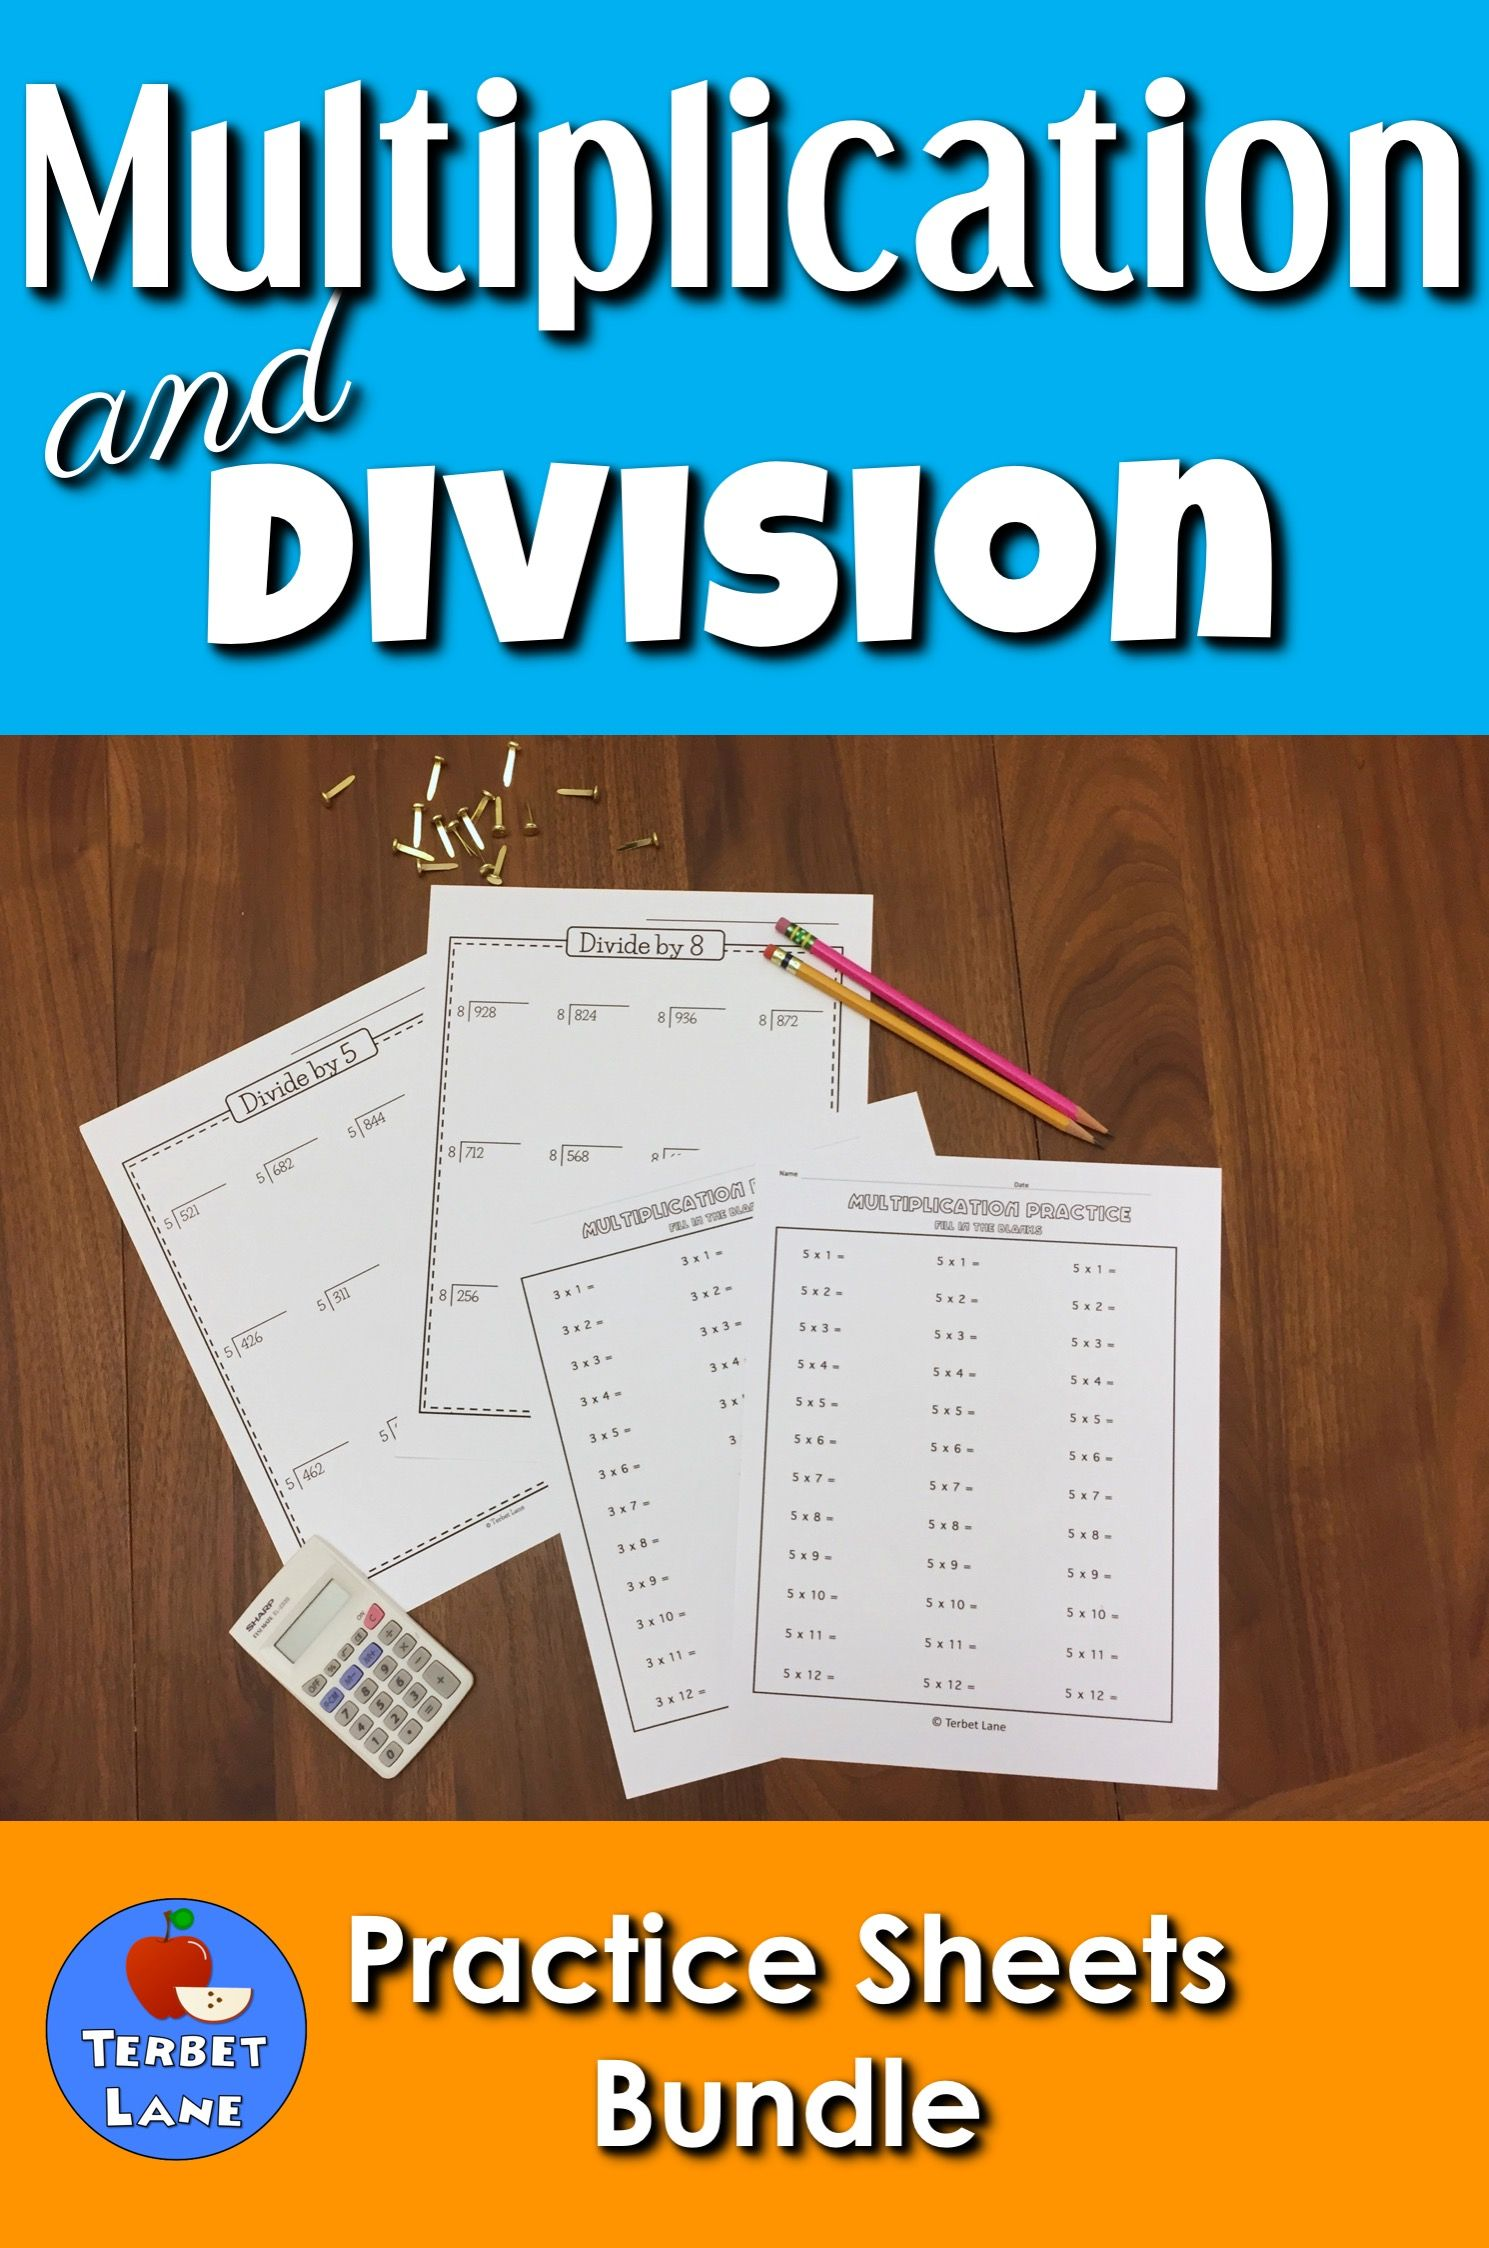 Multiplication Worksheets And Division Worksheets Bundle